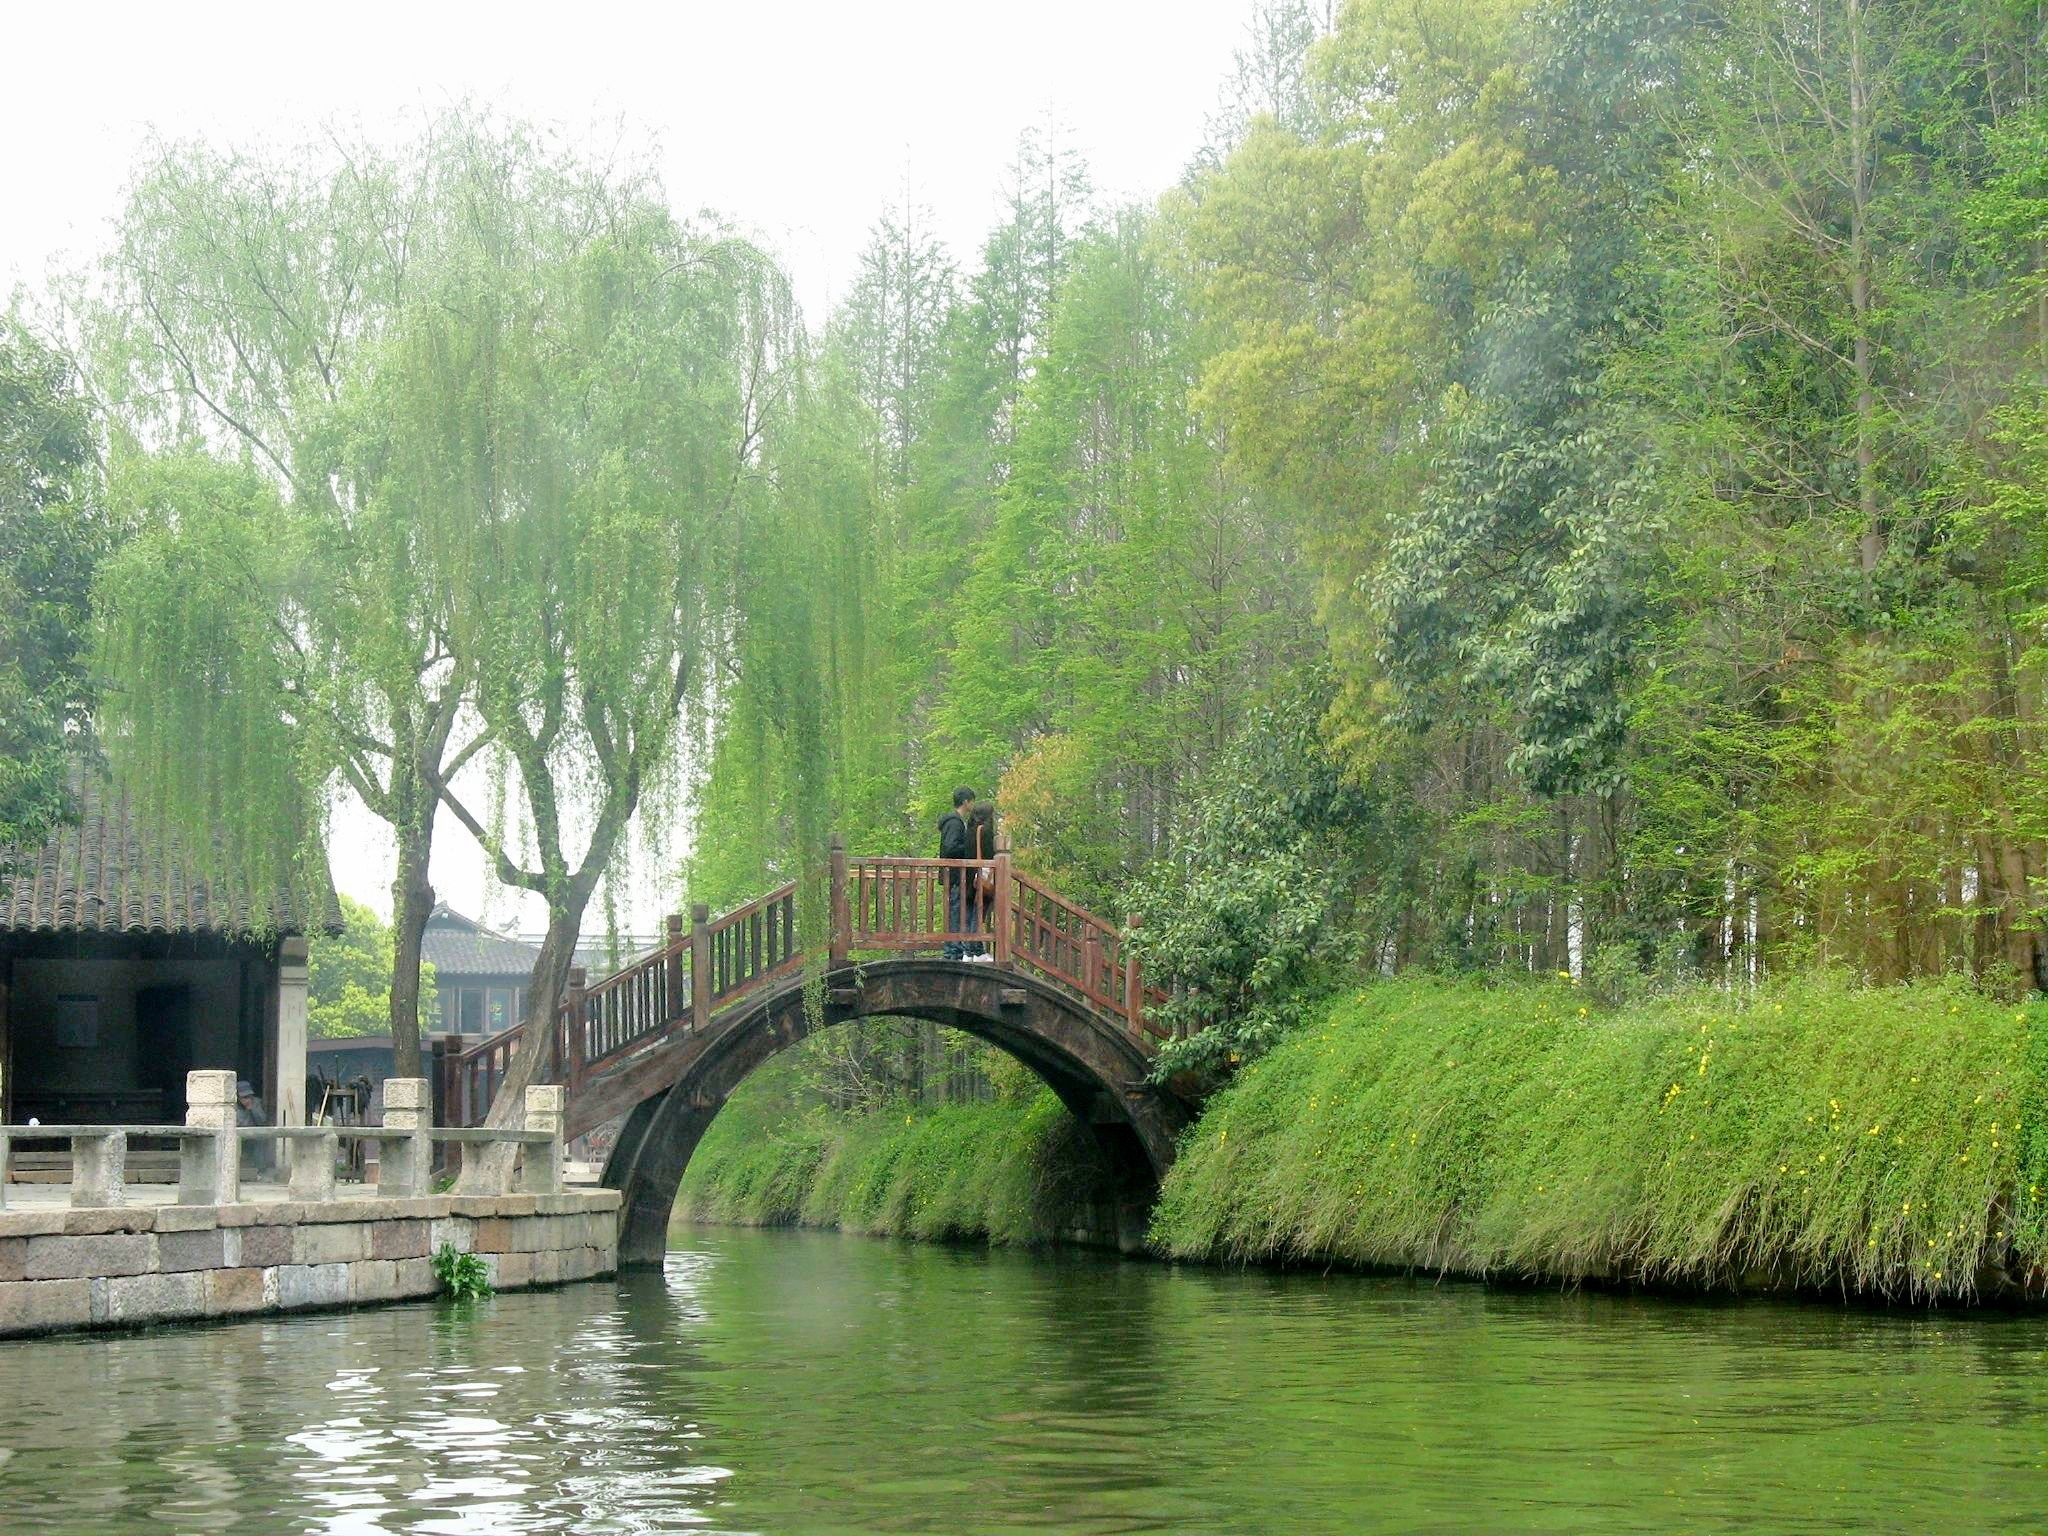 Wuzhen, A Scenic Water Town Of China